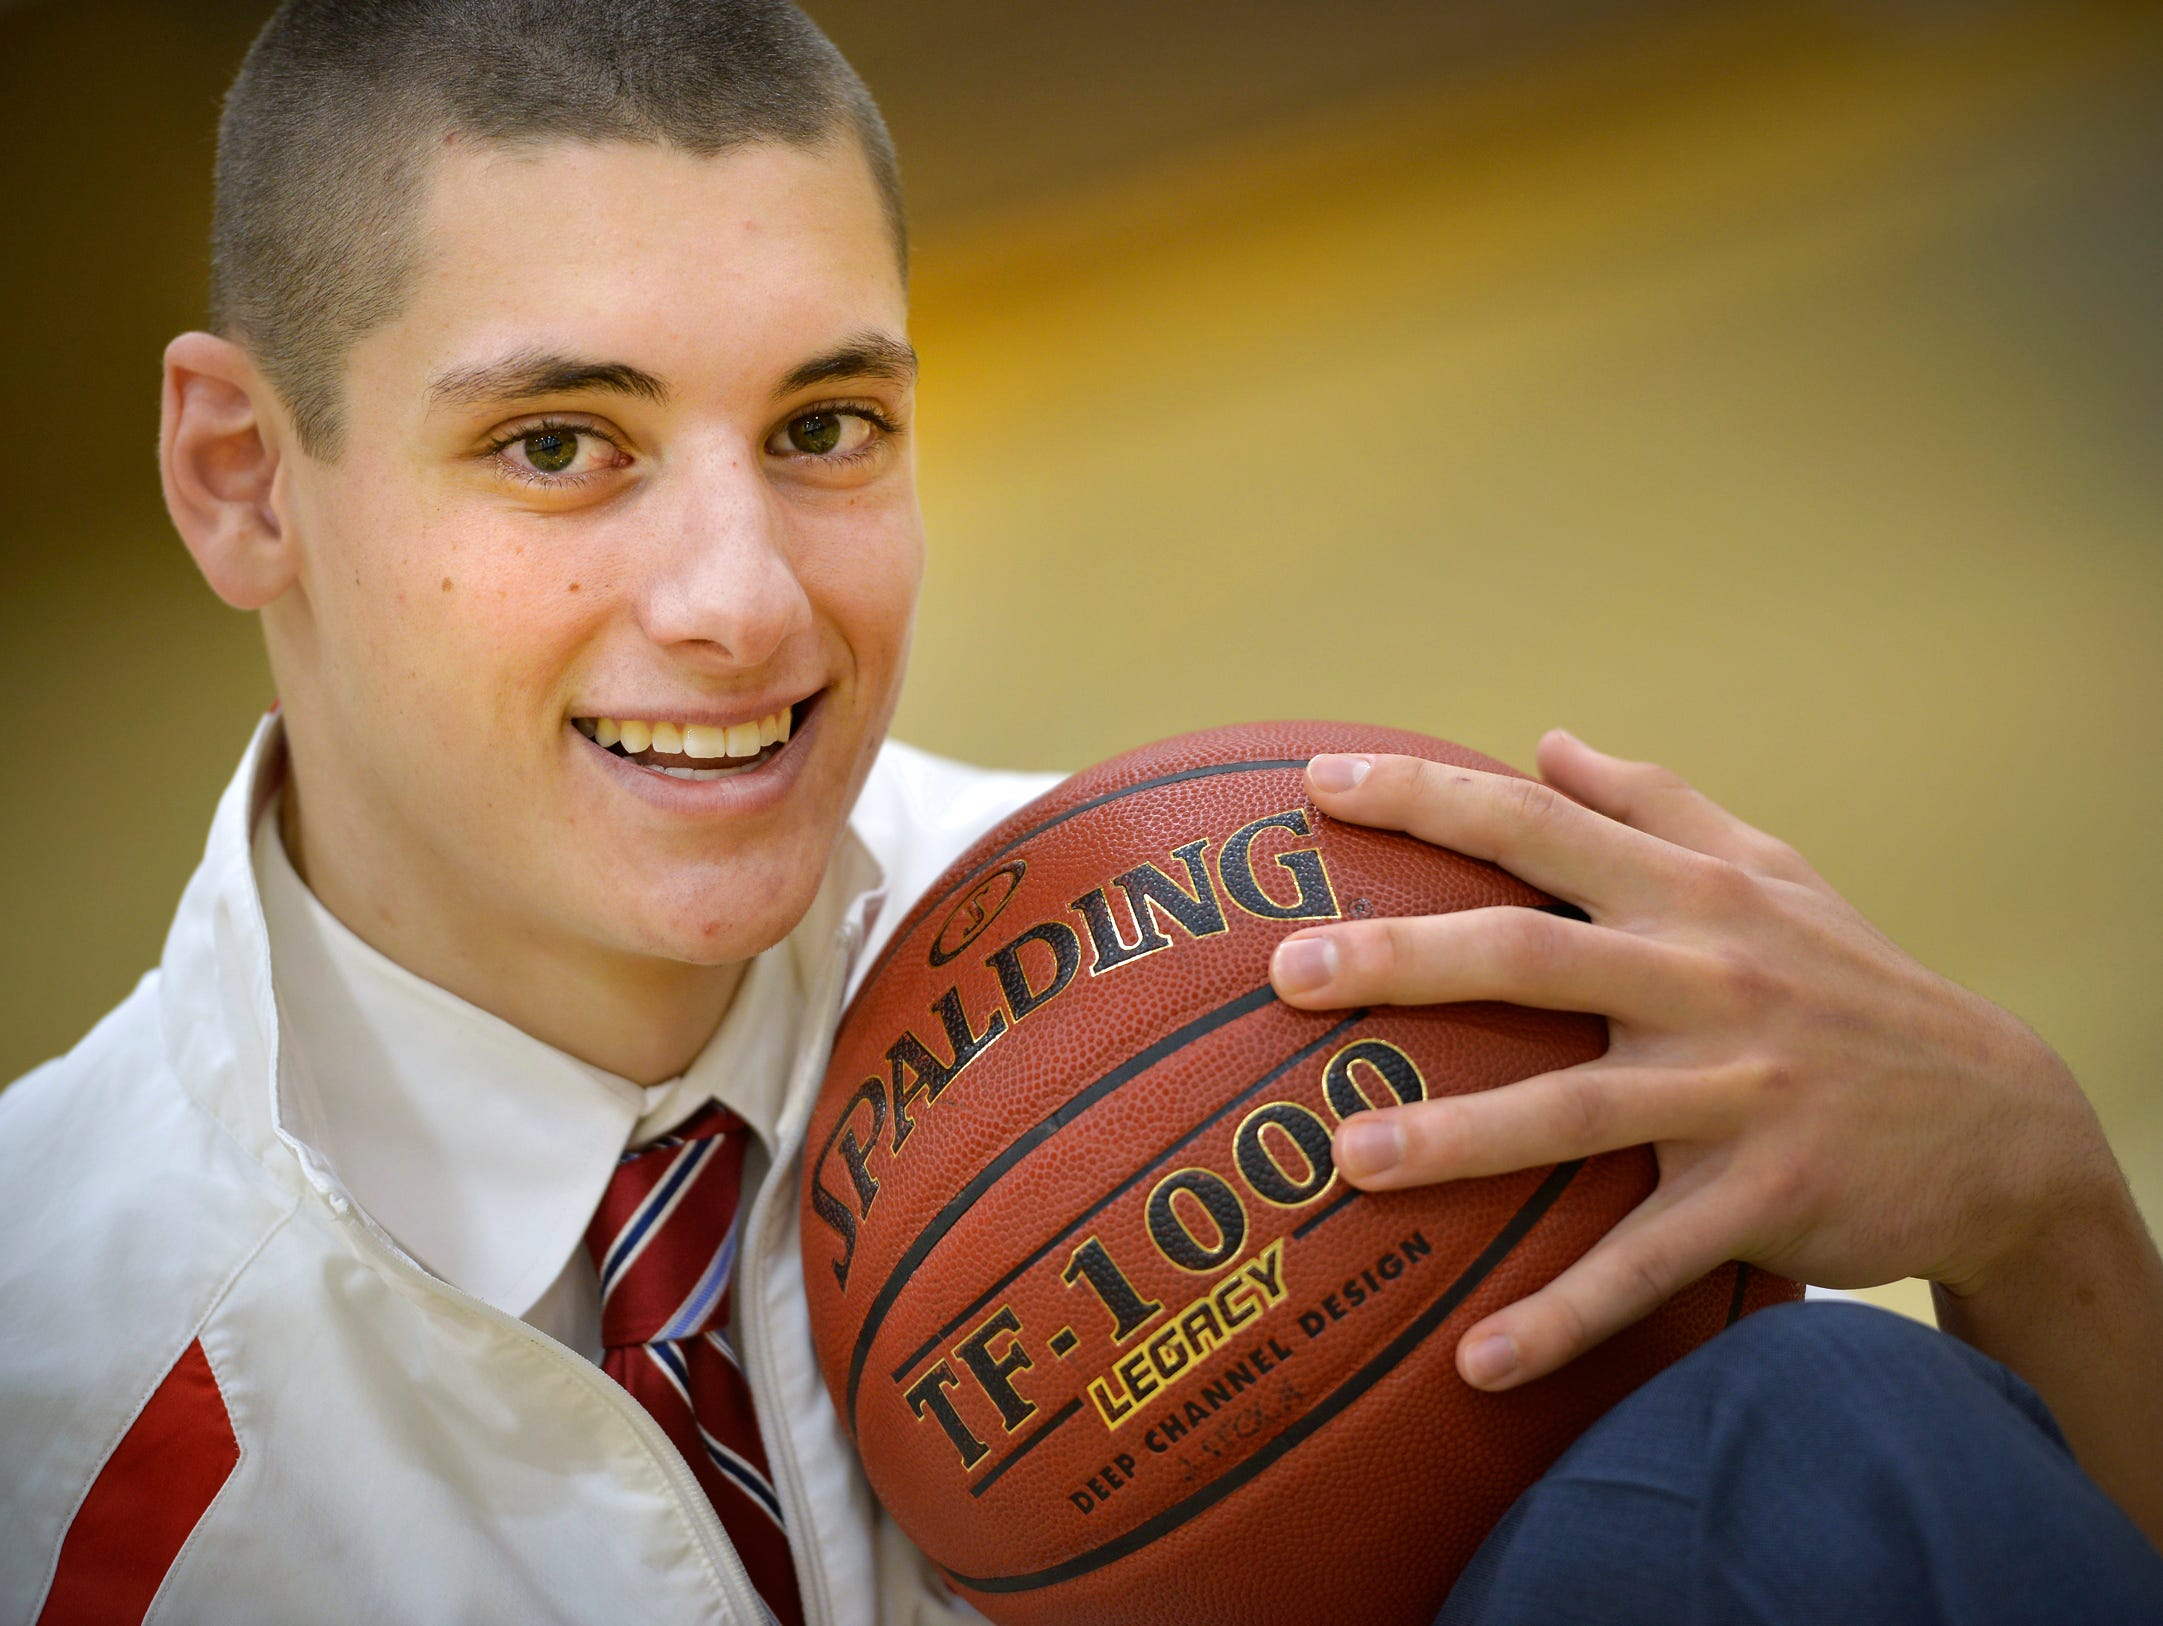 St. John's Prep 6-foot-4 senior guard Joey Stock, photographed Tuesday, Dec. 8, has been putting up solid numbers this year.